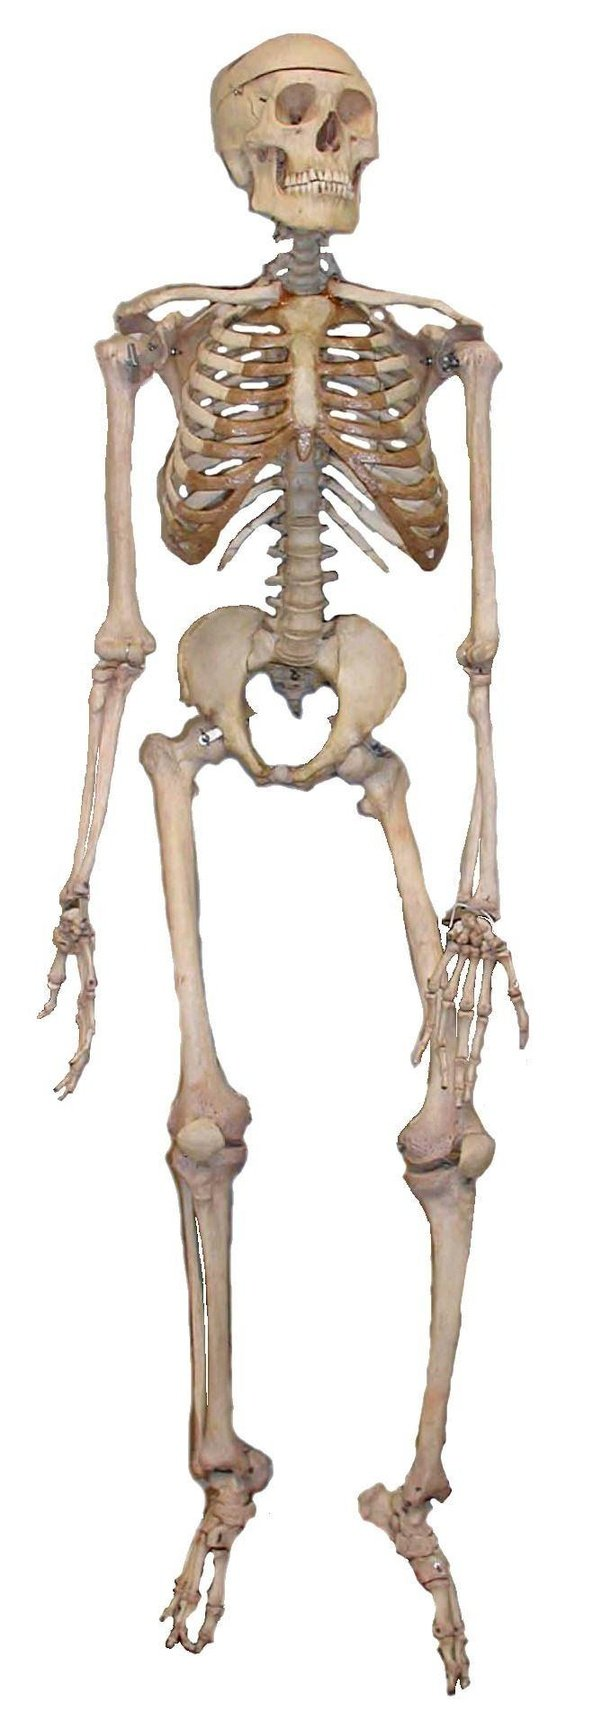 How Much Does A Human Skeleton Weigh Quora